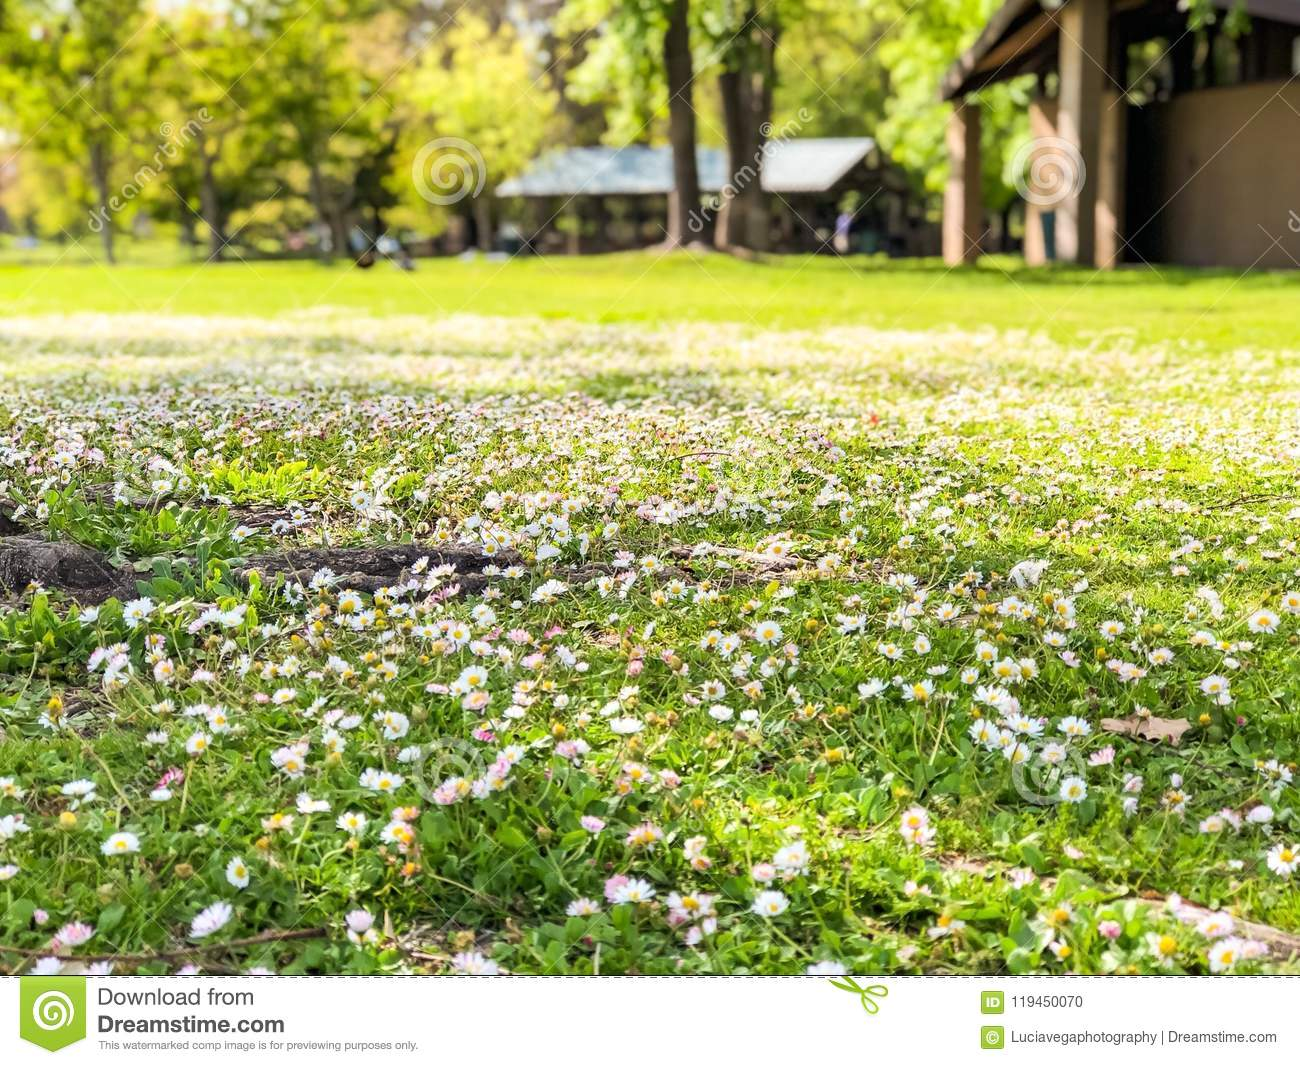 Field of tiny white flowers stock photo image of park building download field of tiny white flowers stock photo image of park building 119450070 mightylinksfo